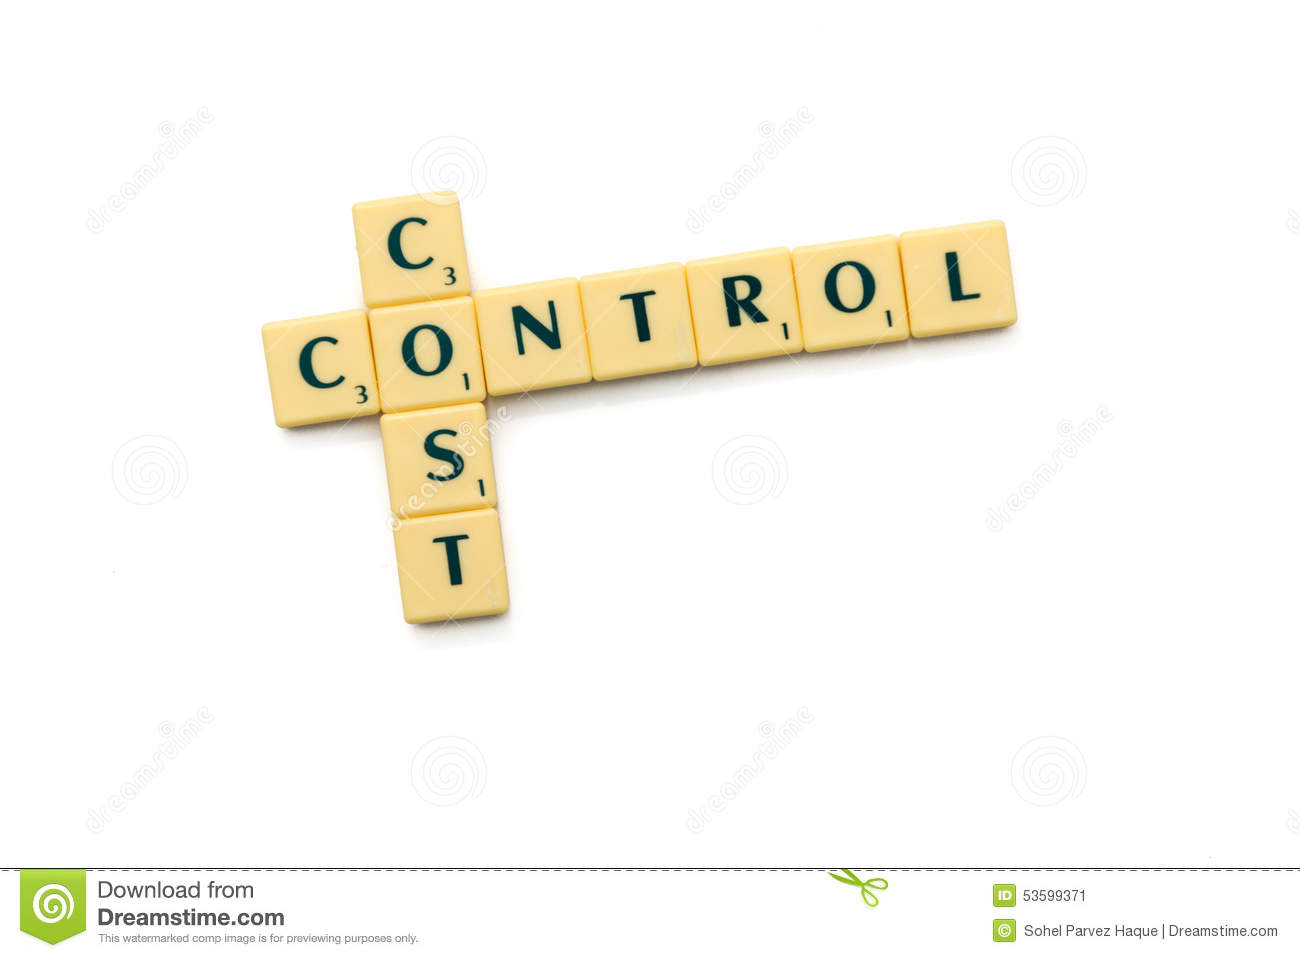 Stock Image: Cost control. Image: 53599371